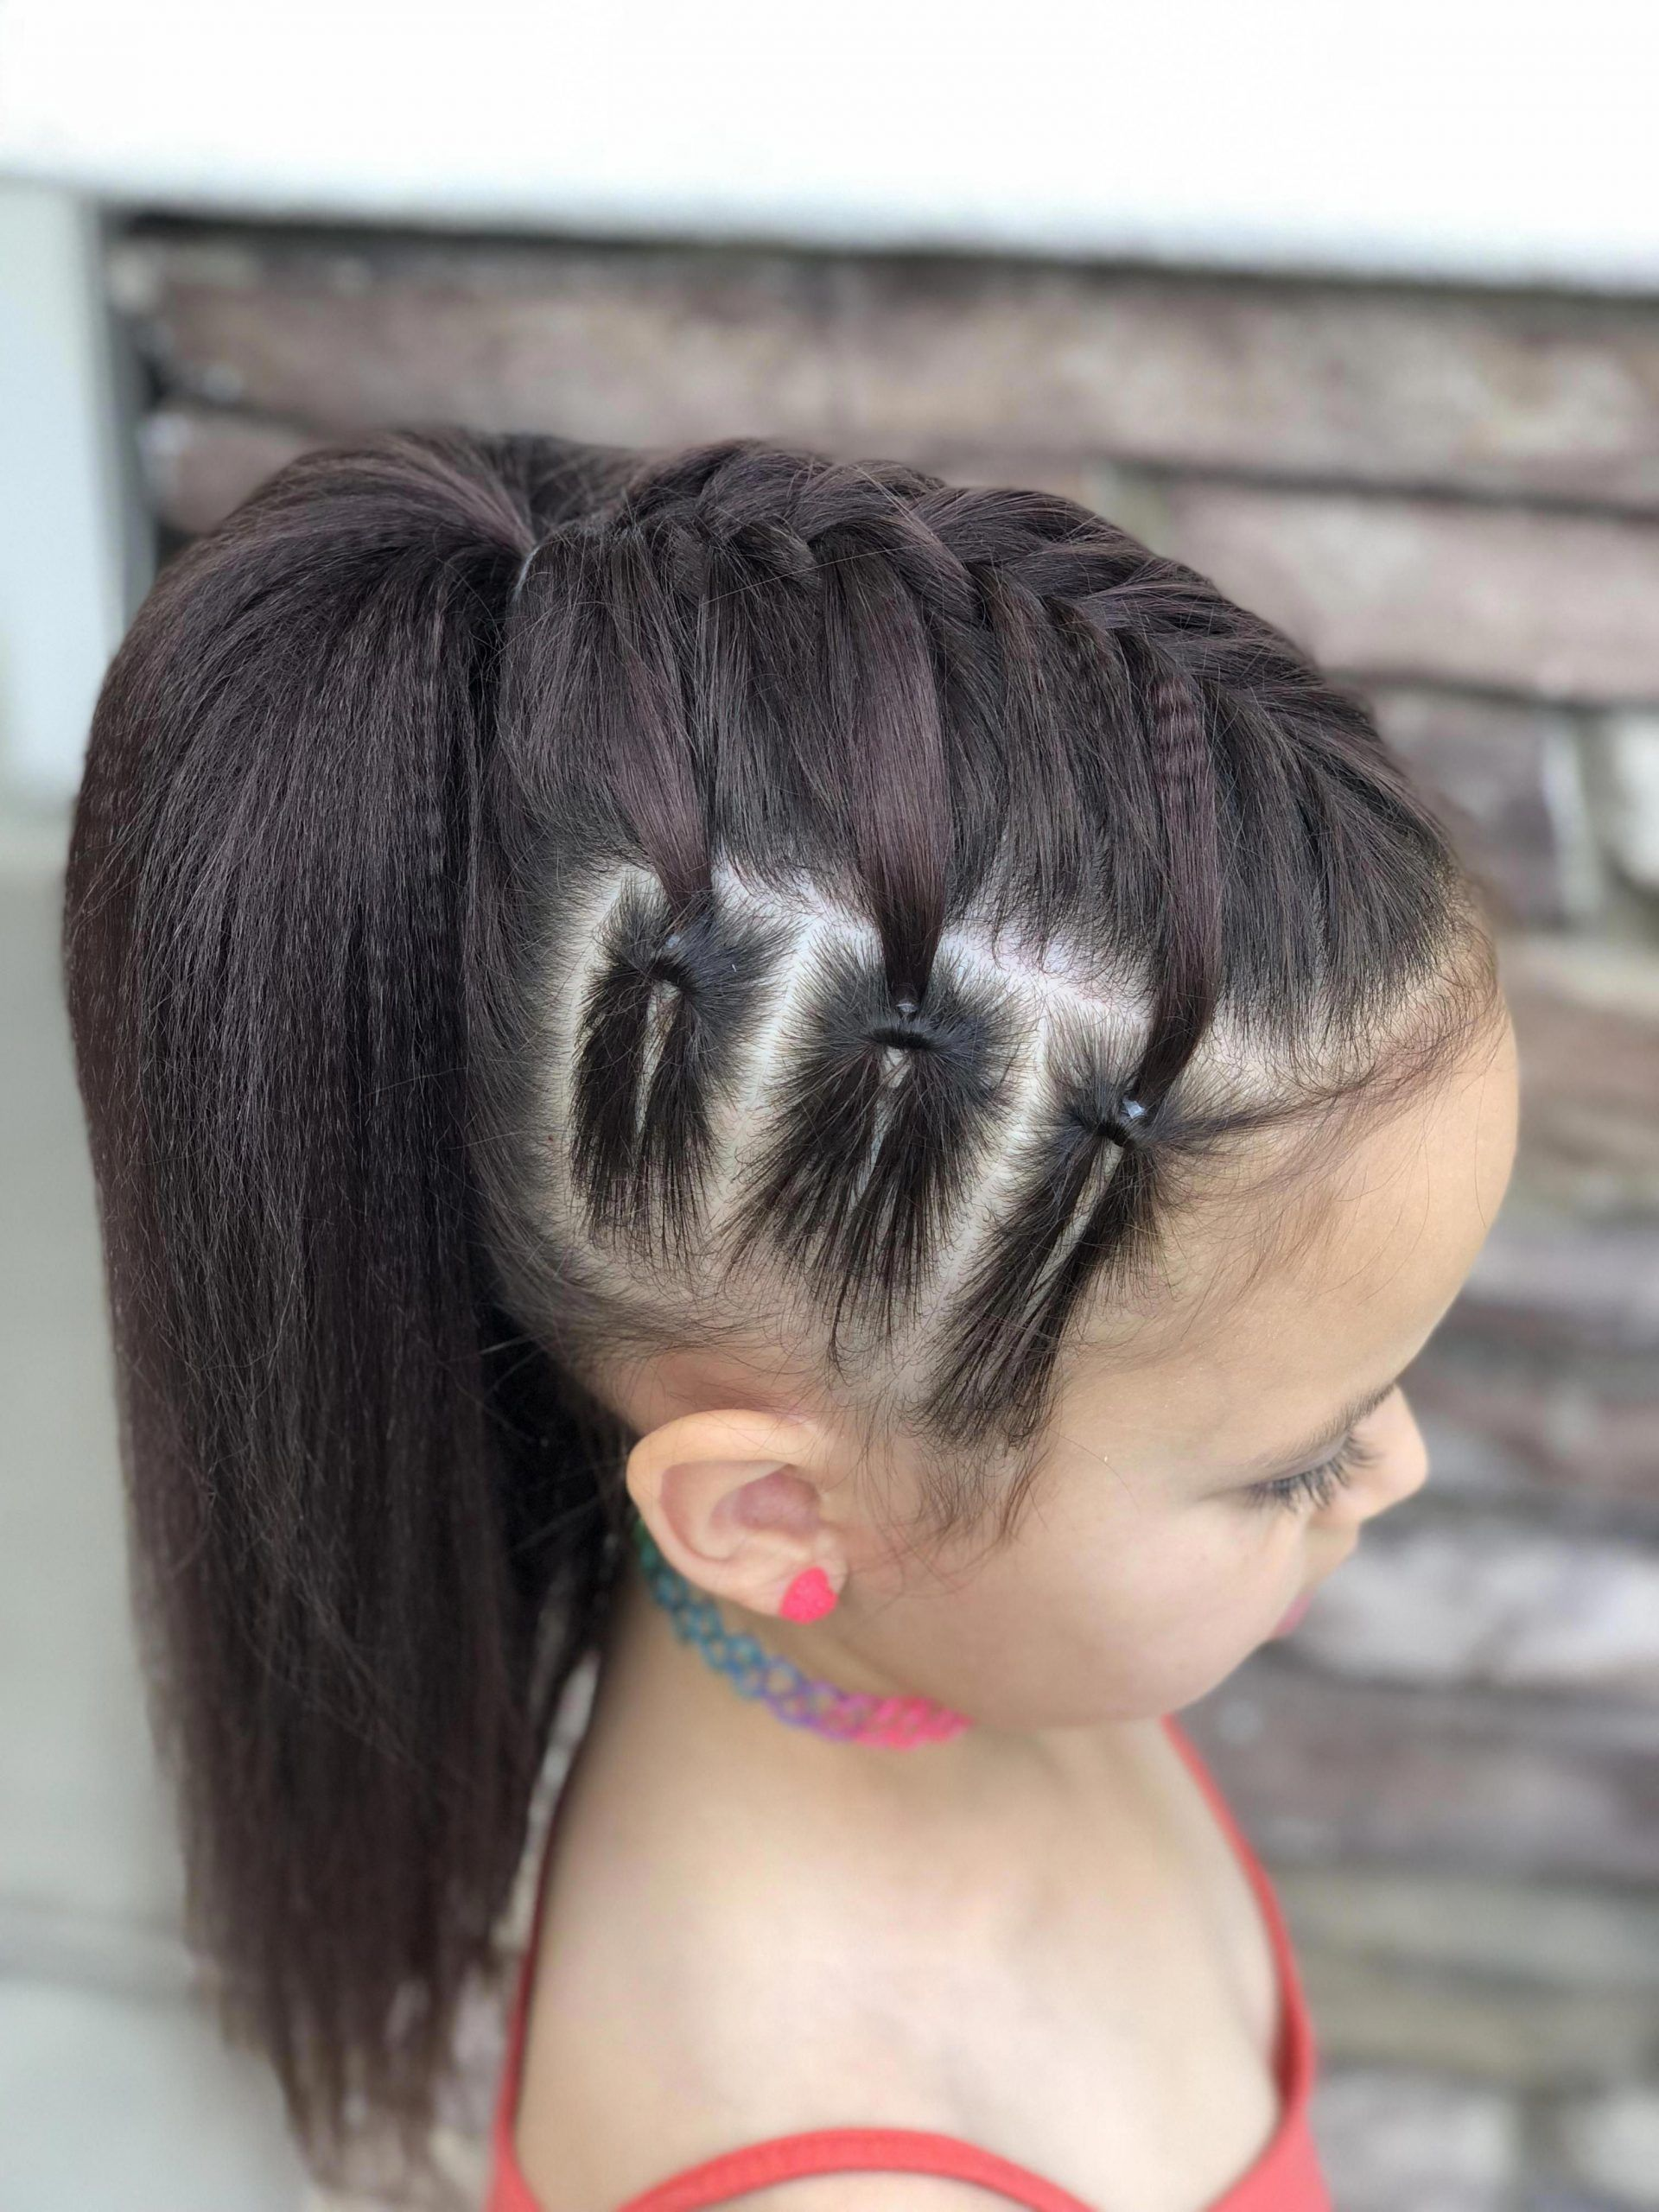 Braided Hairstyles For 9 Year Olds Braided Hairstyles In Kenya 2019 Braided H Braided Hairstyles Kenya In 2020 Hair Styles Little Girl Hairstyles Girl Hair Dos